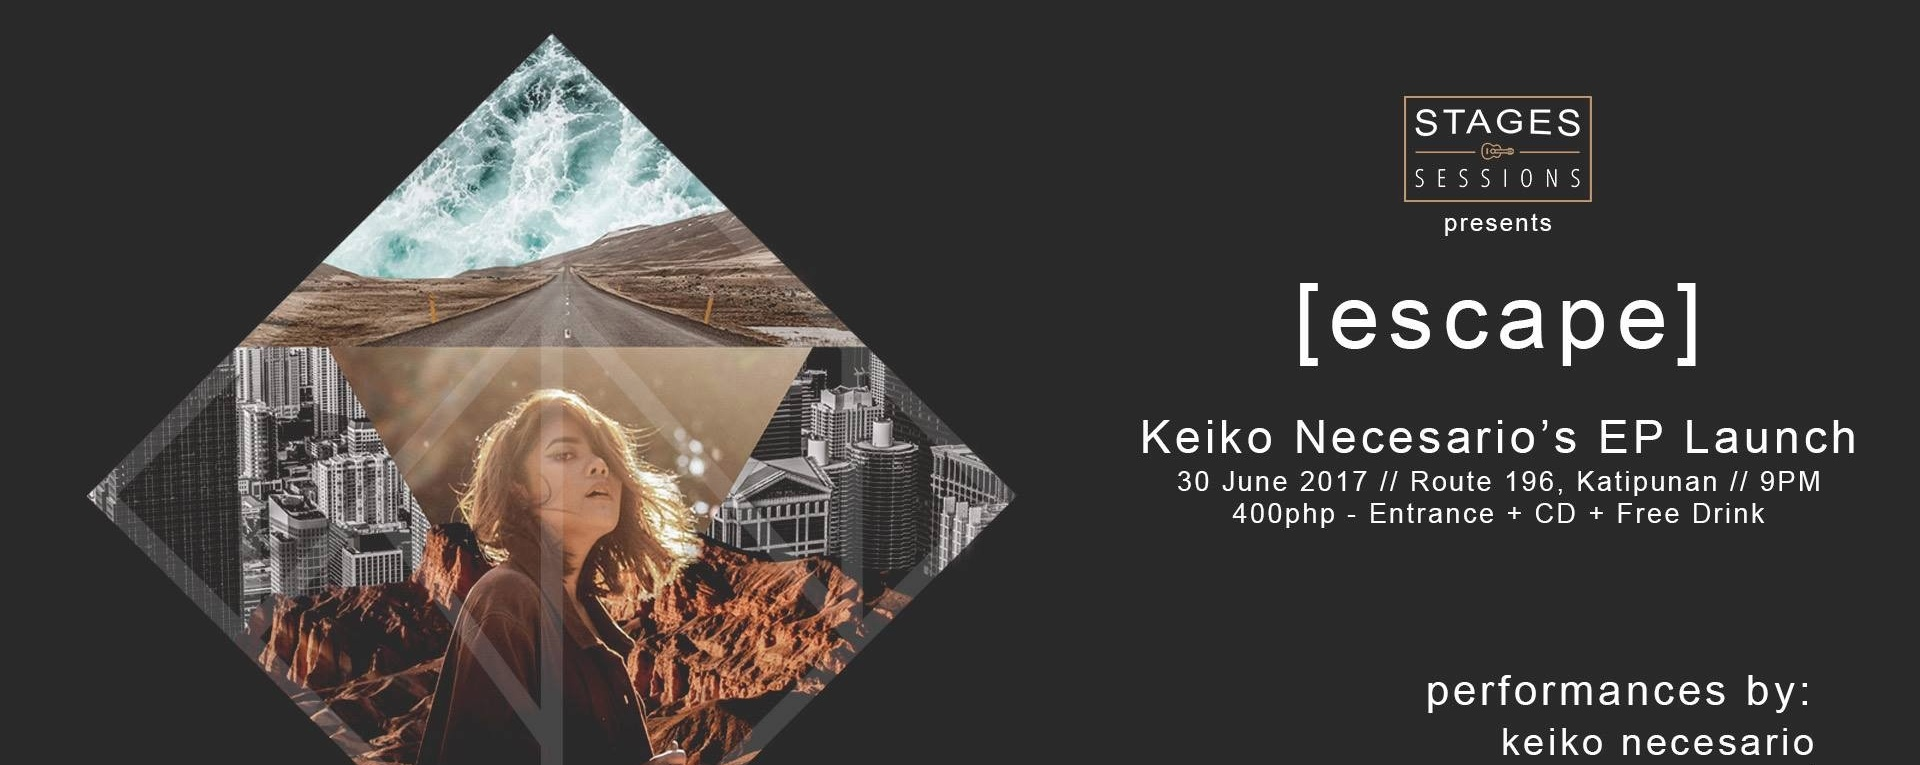 Stages Sessions presents: [escape] Keiko Necesario's EP Launch